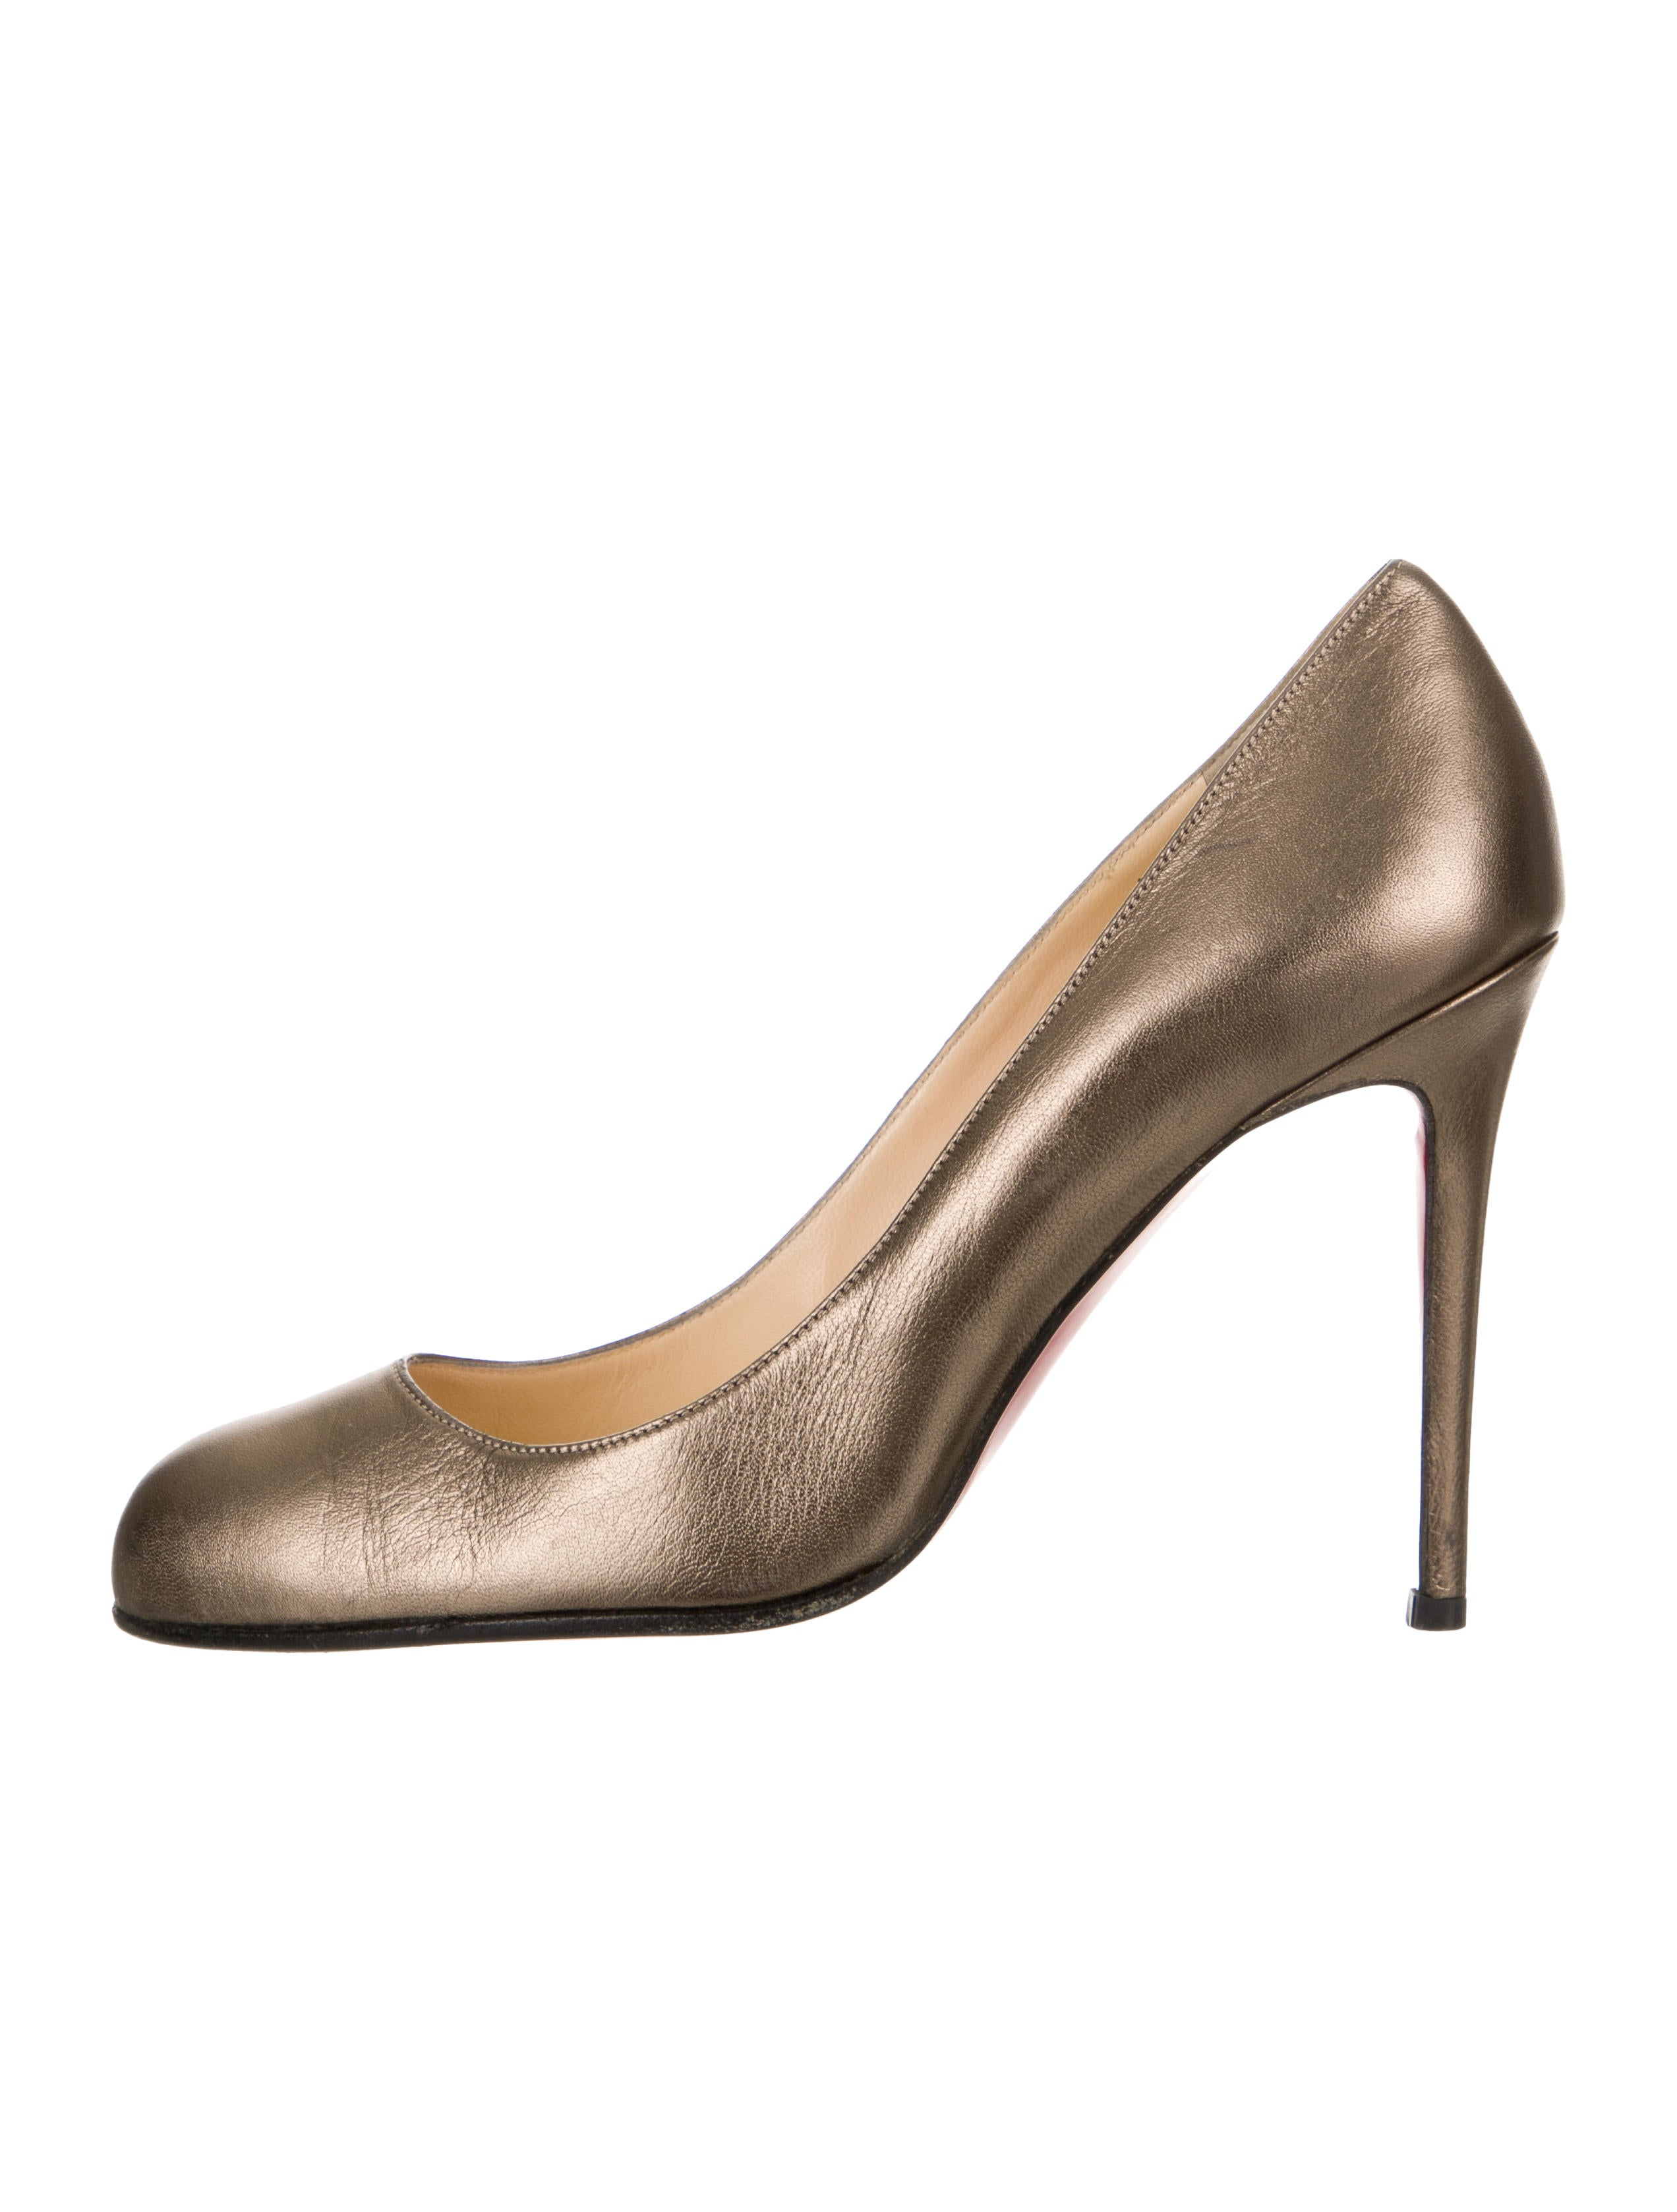 82ca154f8 Christian Louboutin Shoes | The RealReal